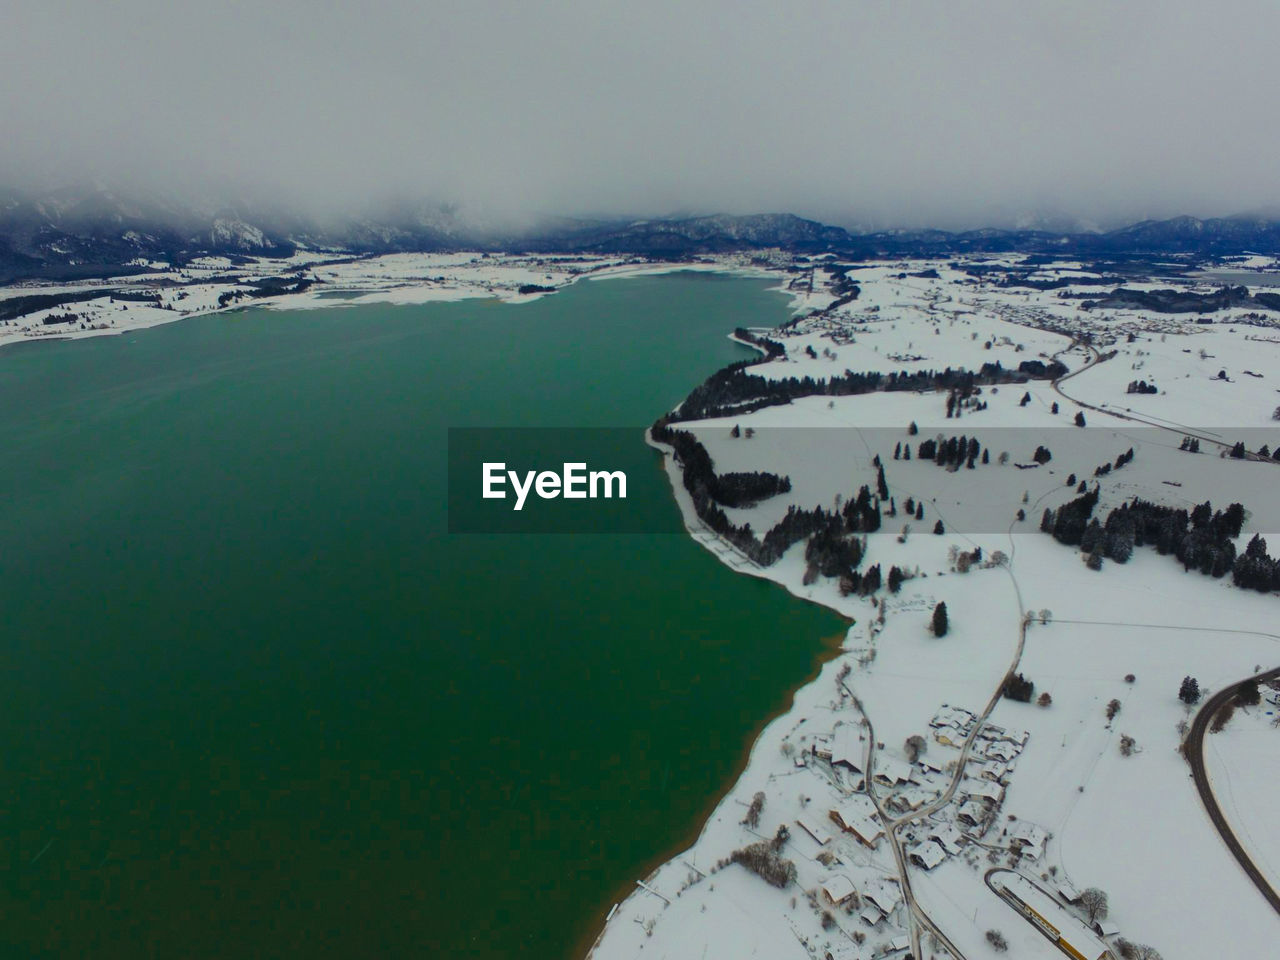 beauty in nature, nature, aerial view, scenics, tranquil scene, landscape, tranquility, outdoors, water, lake, winter, cold temperature, mountain, day, no people, snow, patchwork landscape, sky